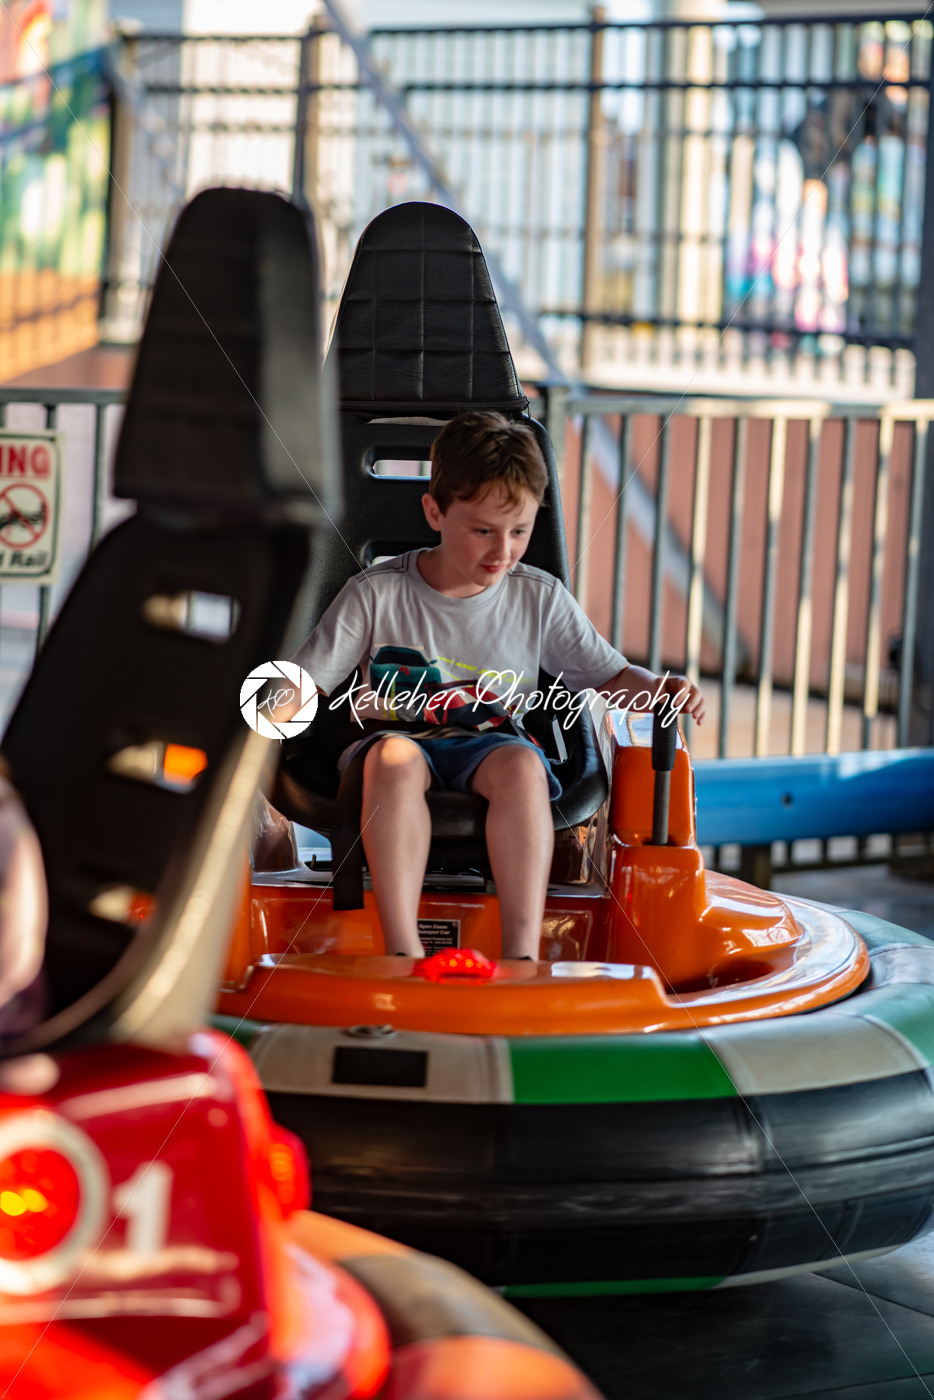 Happy young boy rides electric bumper car amusement ride on shore boardwalk - Kelleher Photography Store